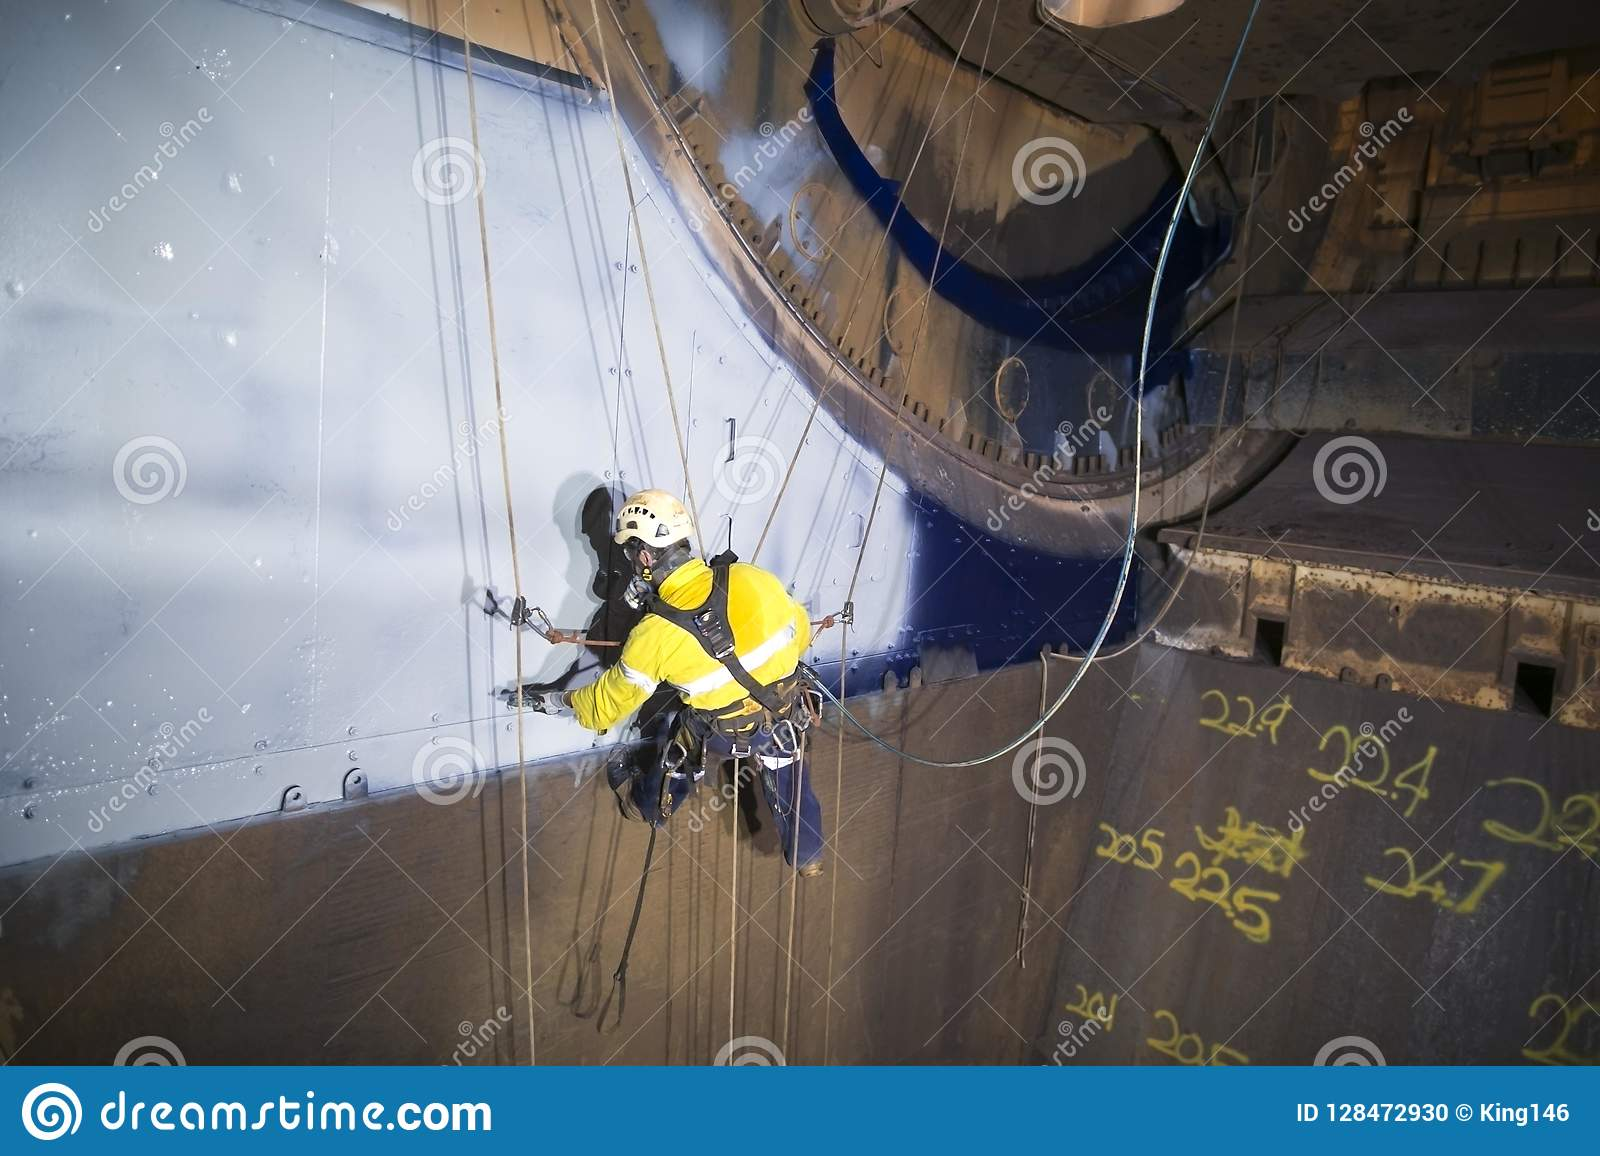 Male industrial rope access technician painter working at height hanging on twin ropes